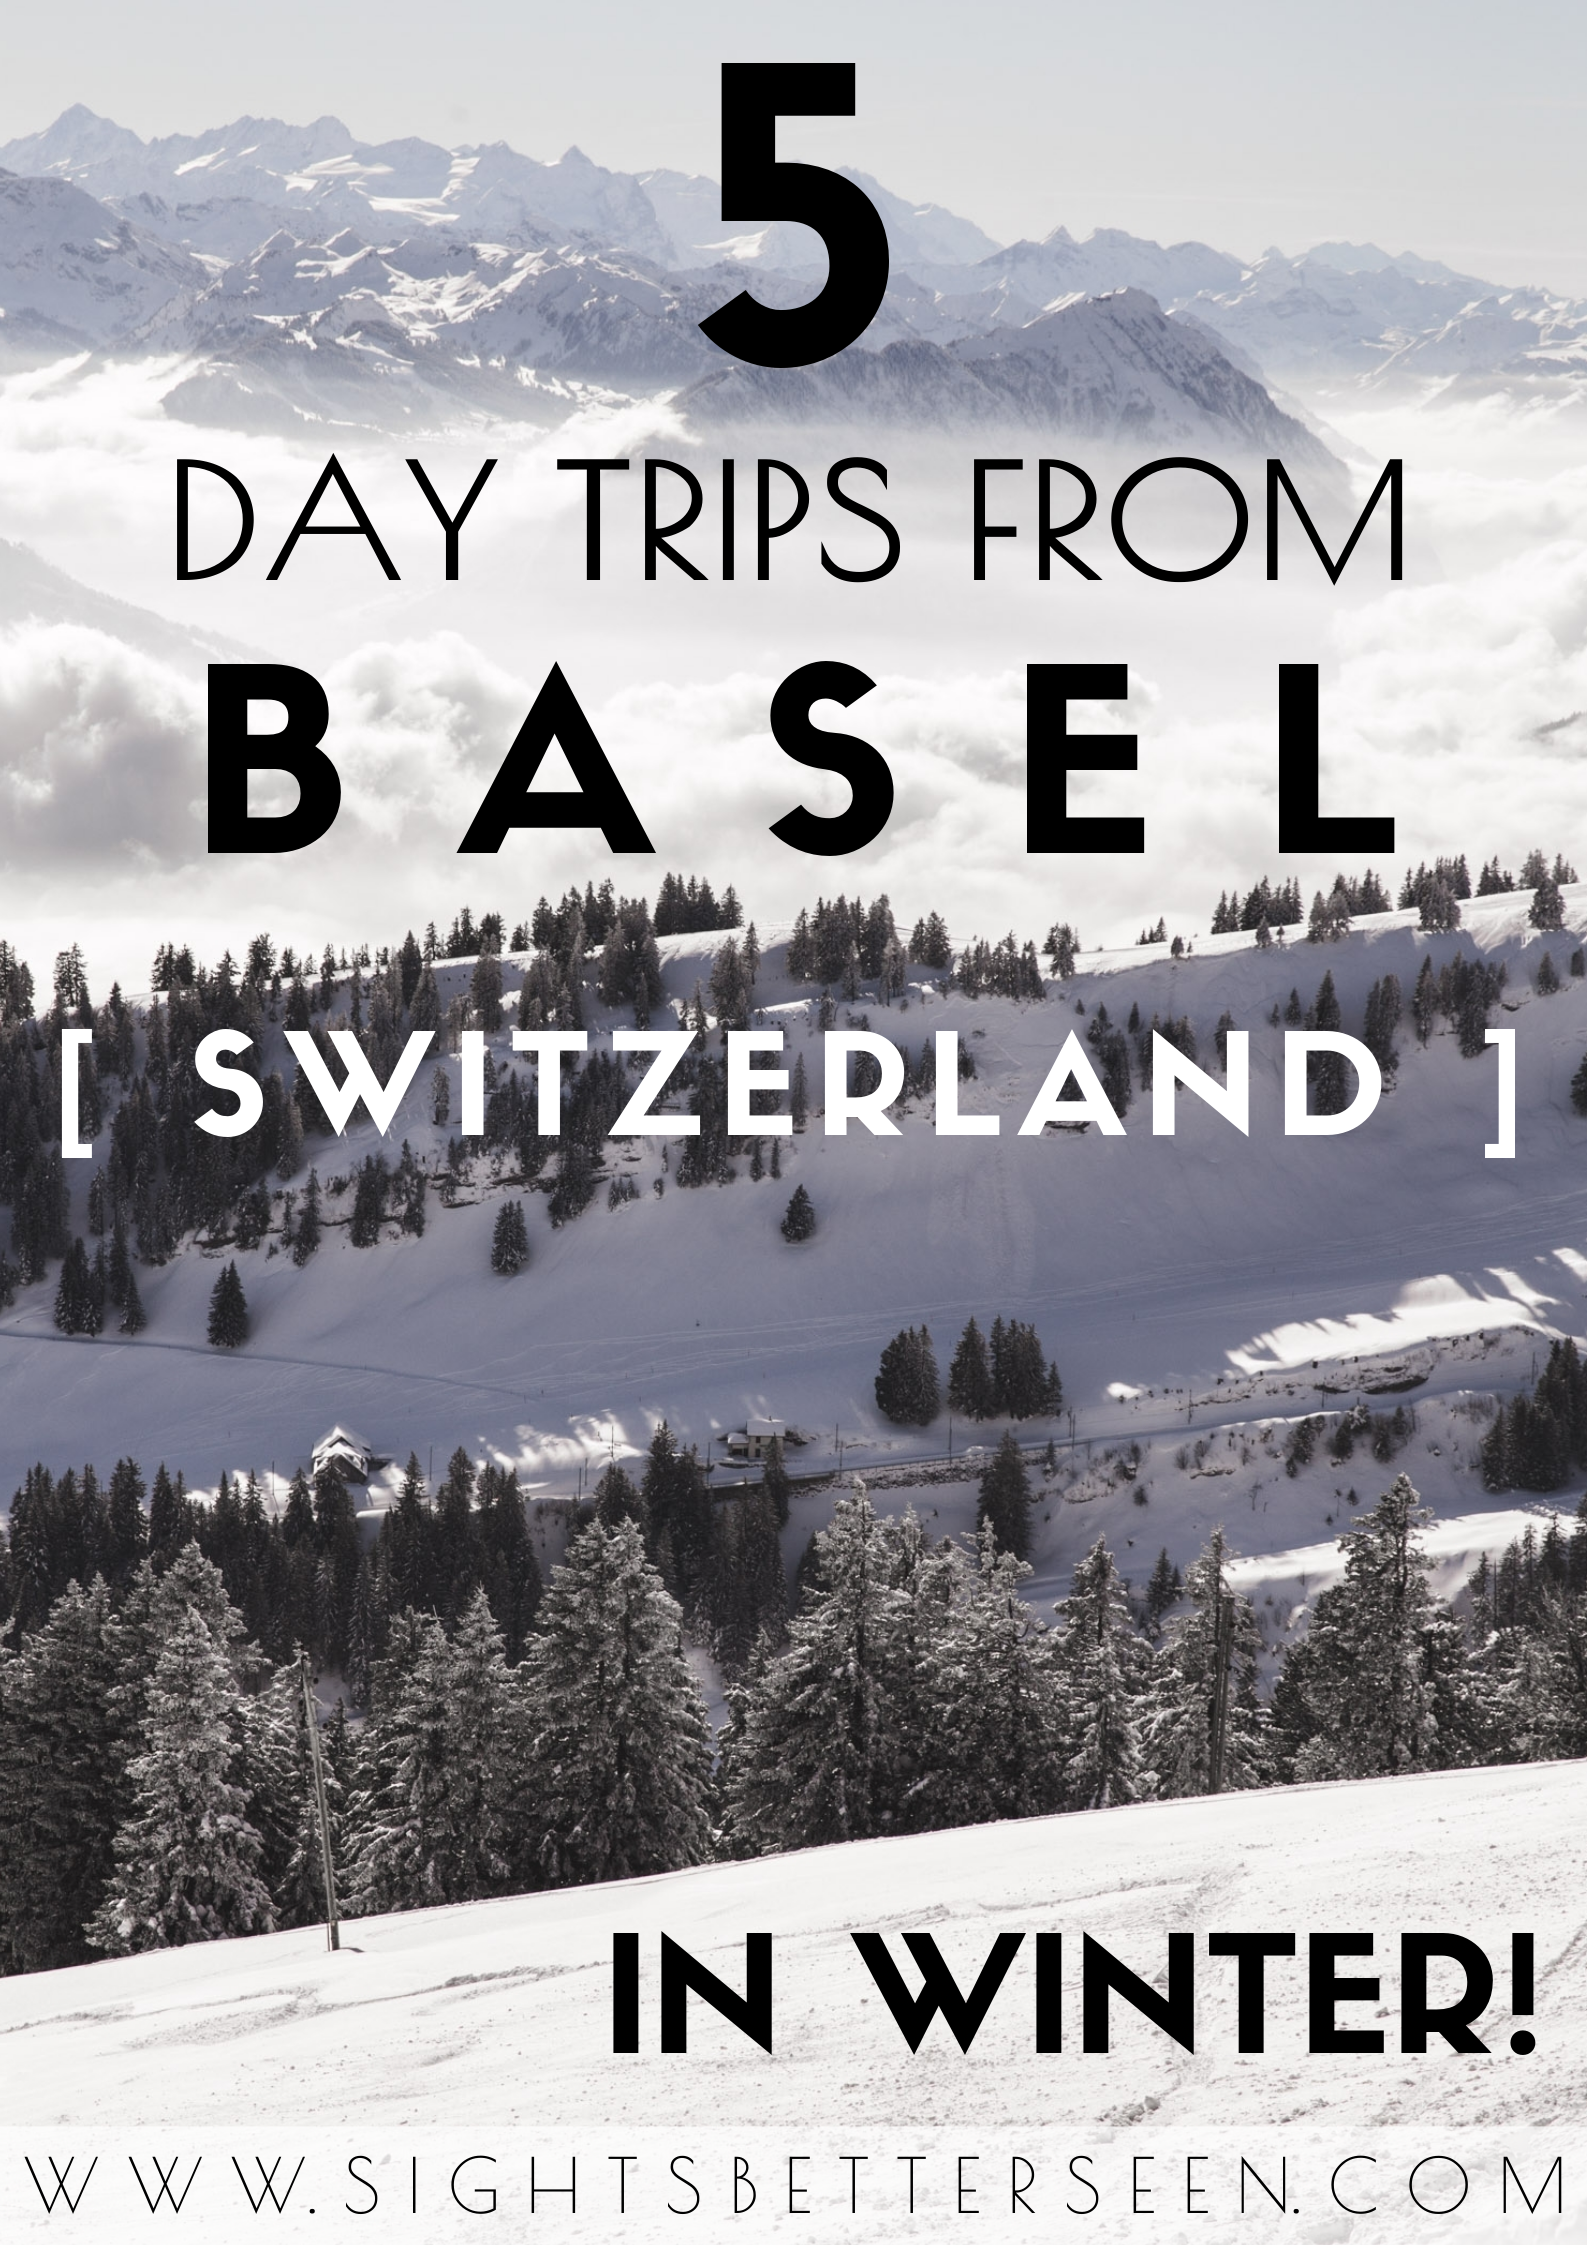 5 winter day trips from Basel, Switzerland including trips to the Swiss Alps, cities, and towns! This includes the best things to do in each of these places.